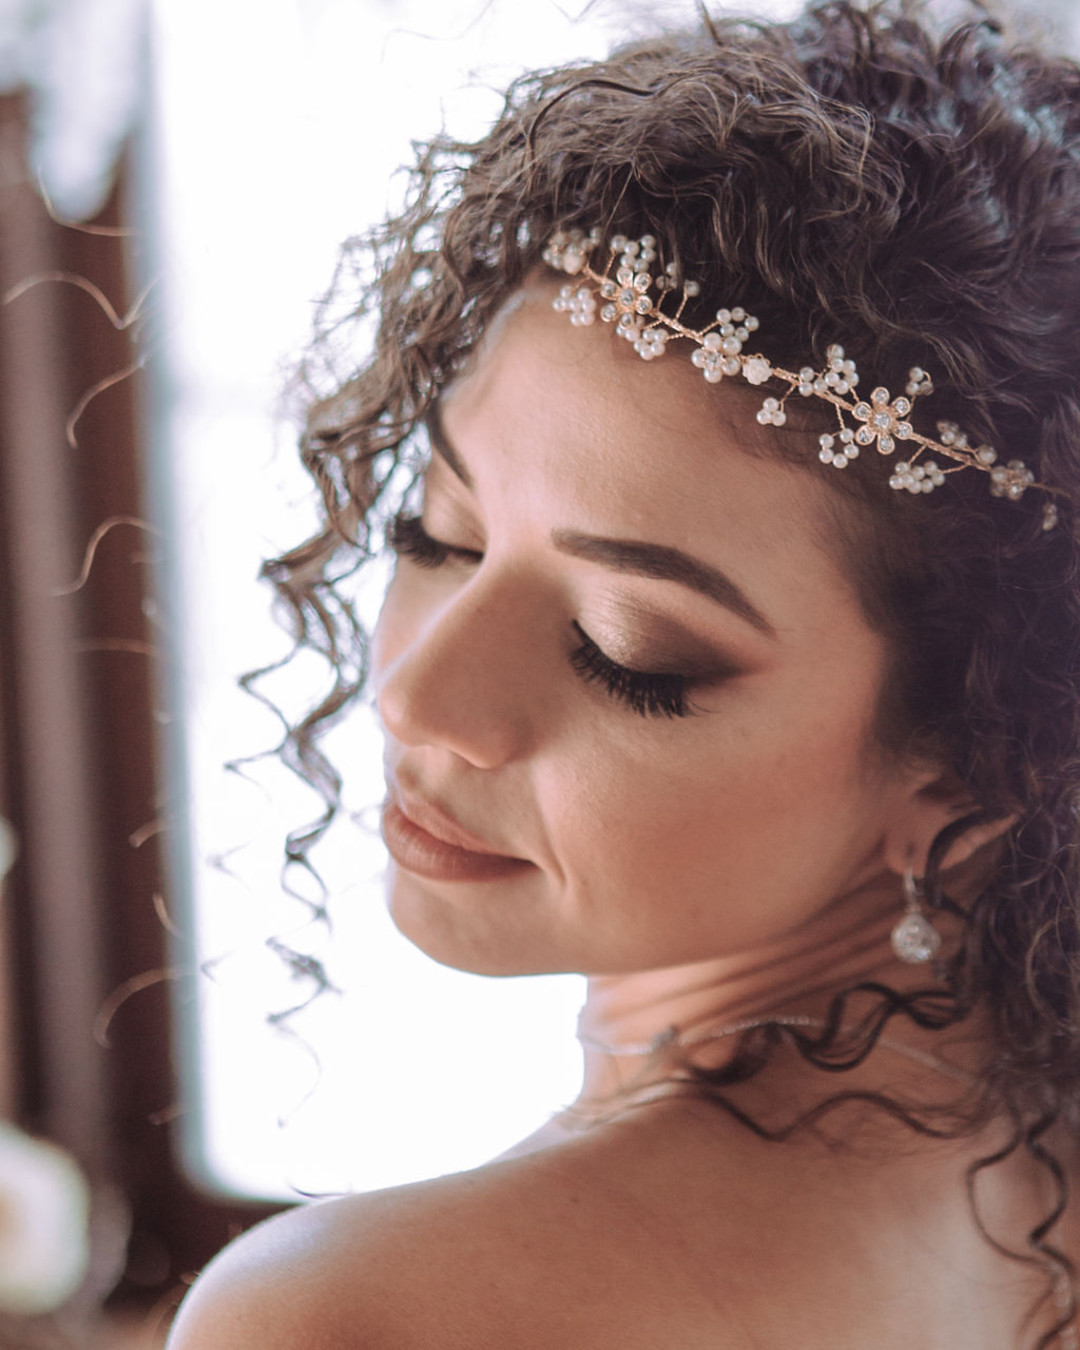 Wedding hair accessories: Bohemian wedding inspiration captured by Truly Sublime Photography. See more boho wedding ideas on CHItheeWED.com!